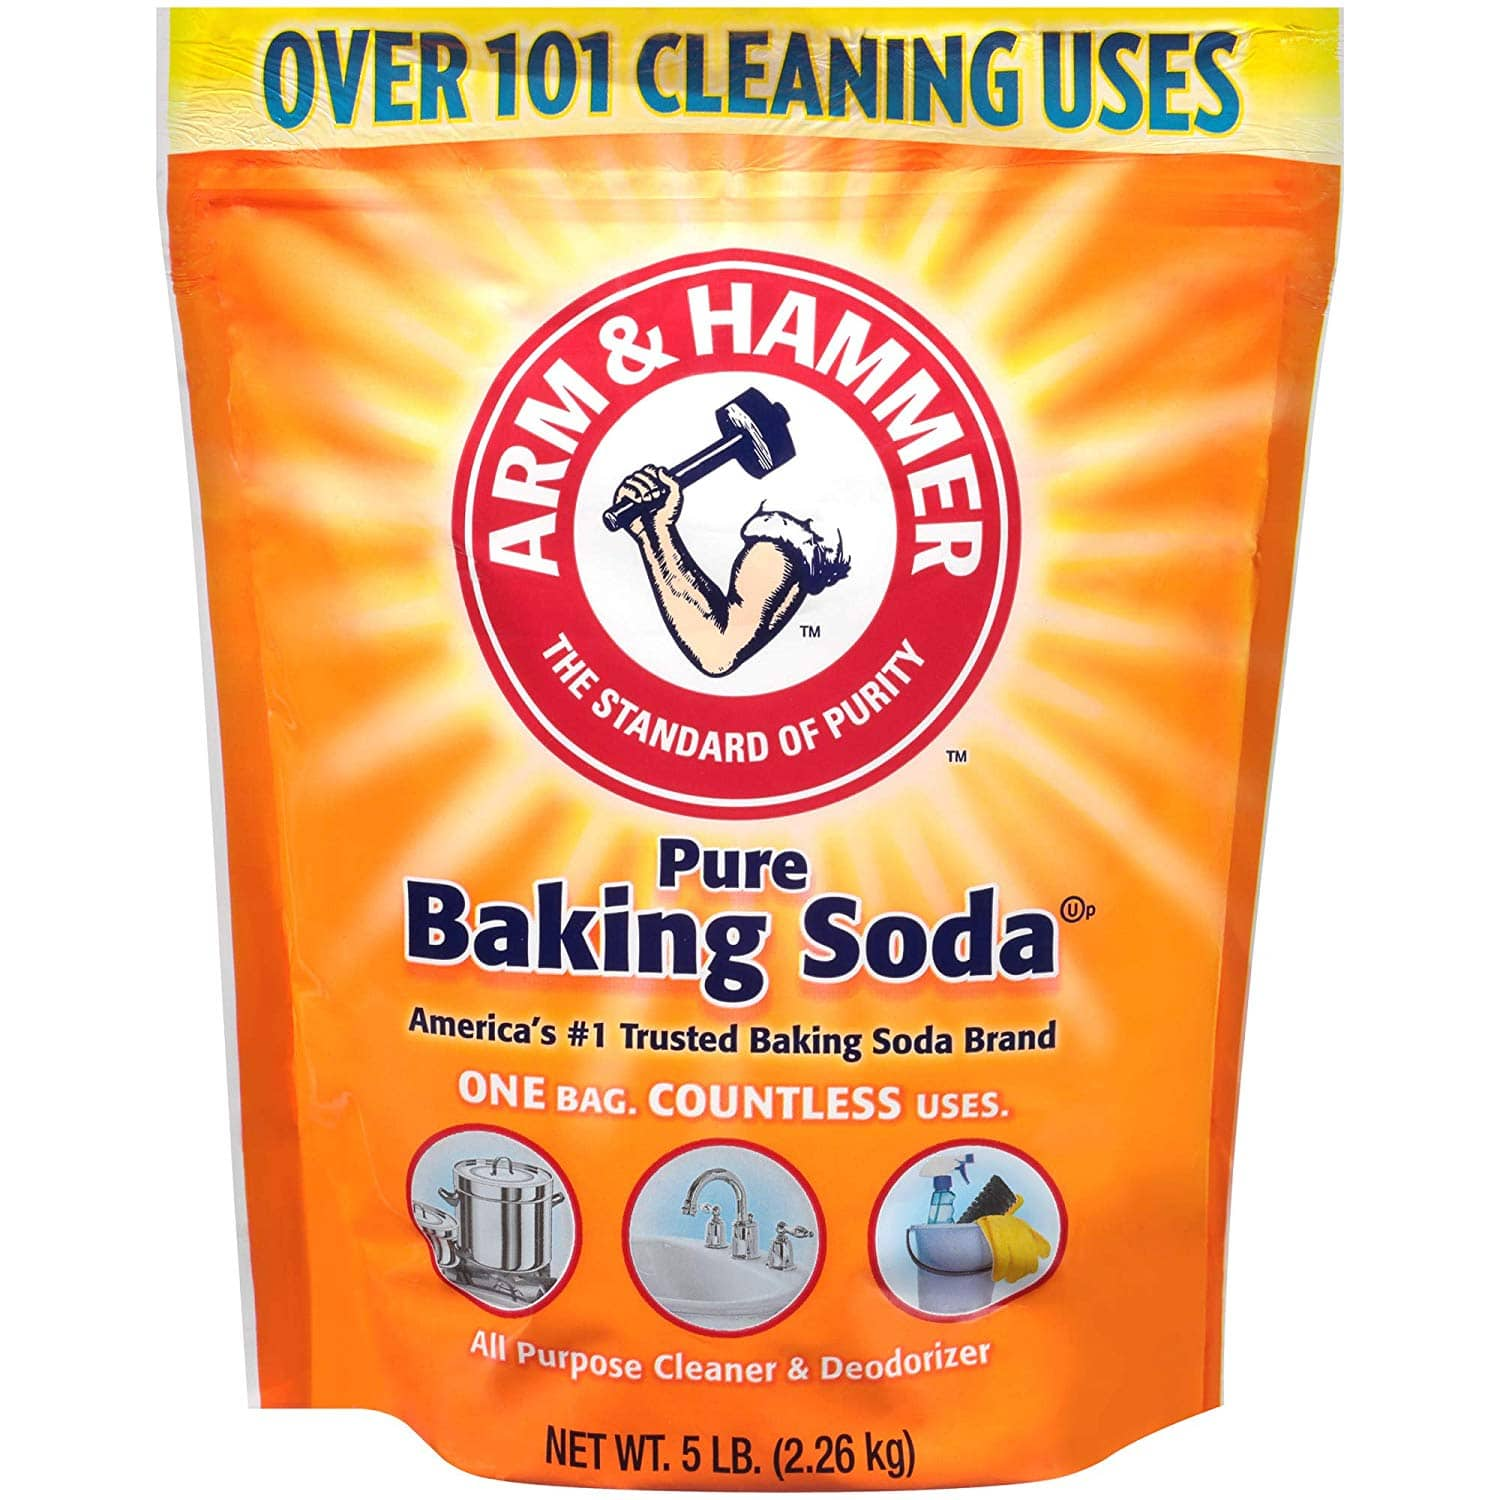 5-lbs Arm & Hammer Baking Soda $3.25 w/ S&S + Free S&H